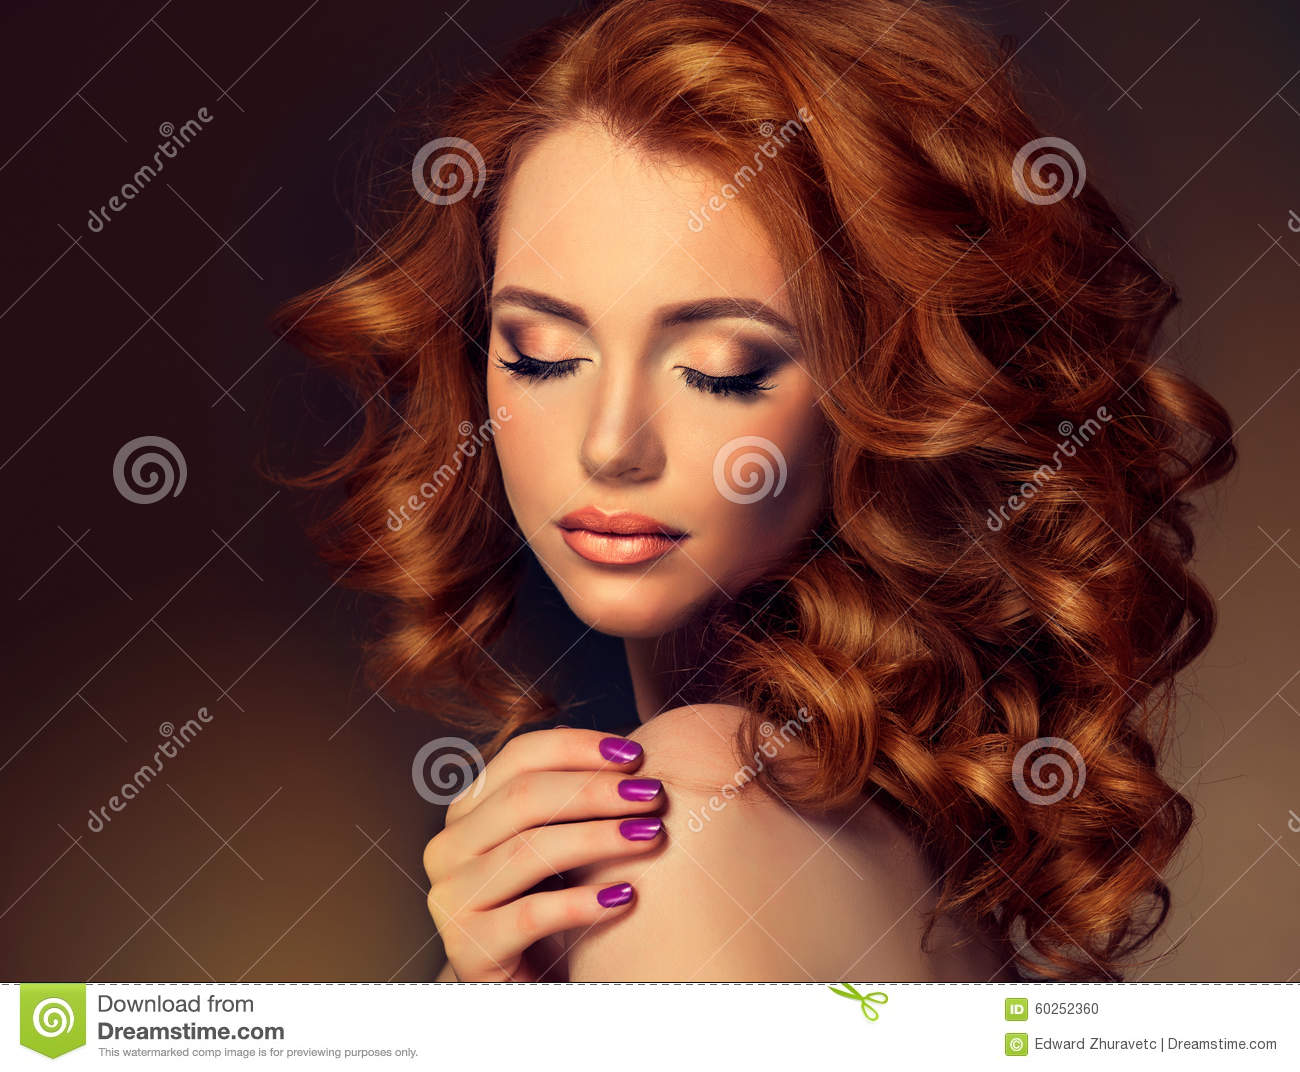 Girl Model With Long Curly Red Hair Stock Photo  Image of head coiffeur 60252360